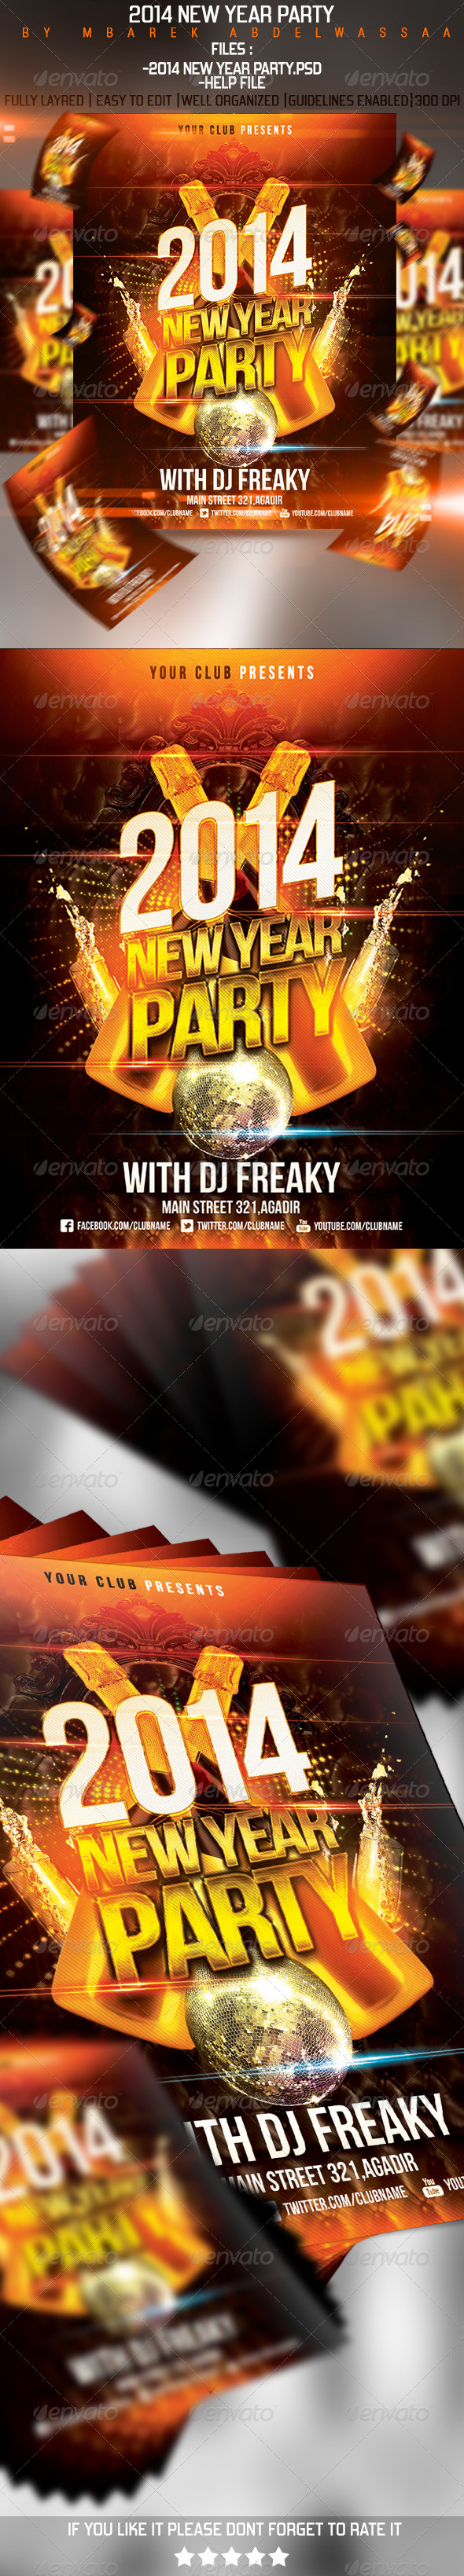 2014 New Year Flyer - Events Flyers